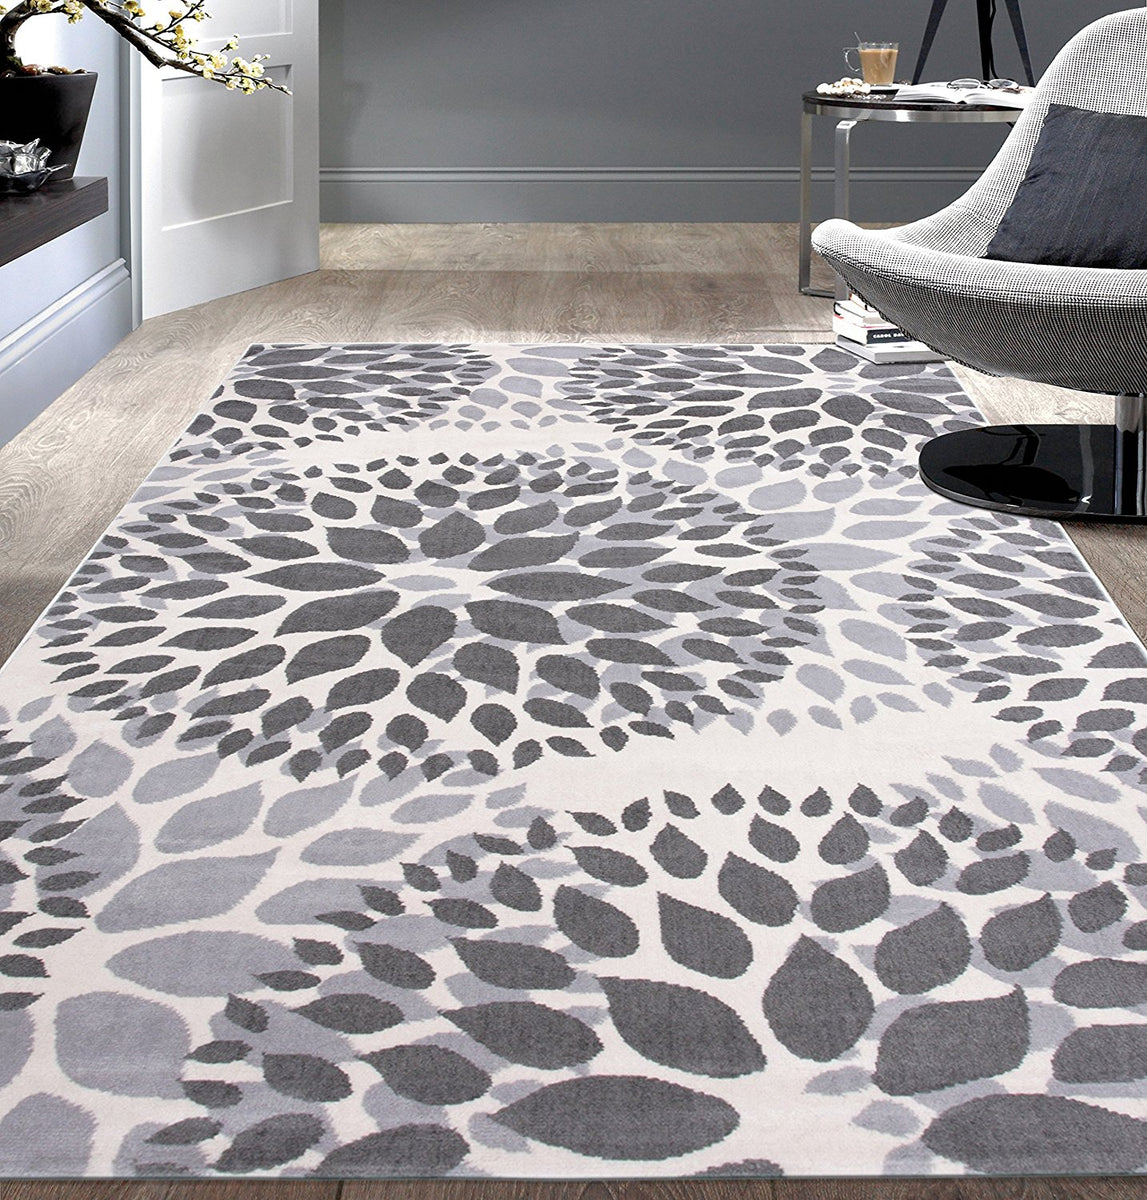 Floral Gray Grey Off White Area Rug Modern Rugs And Decor